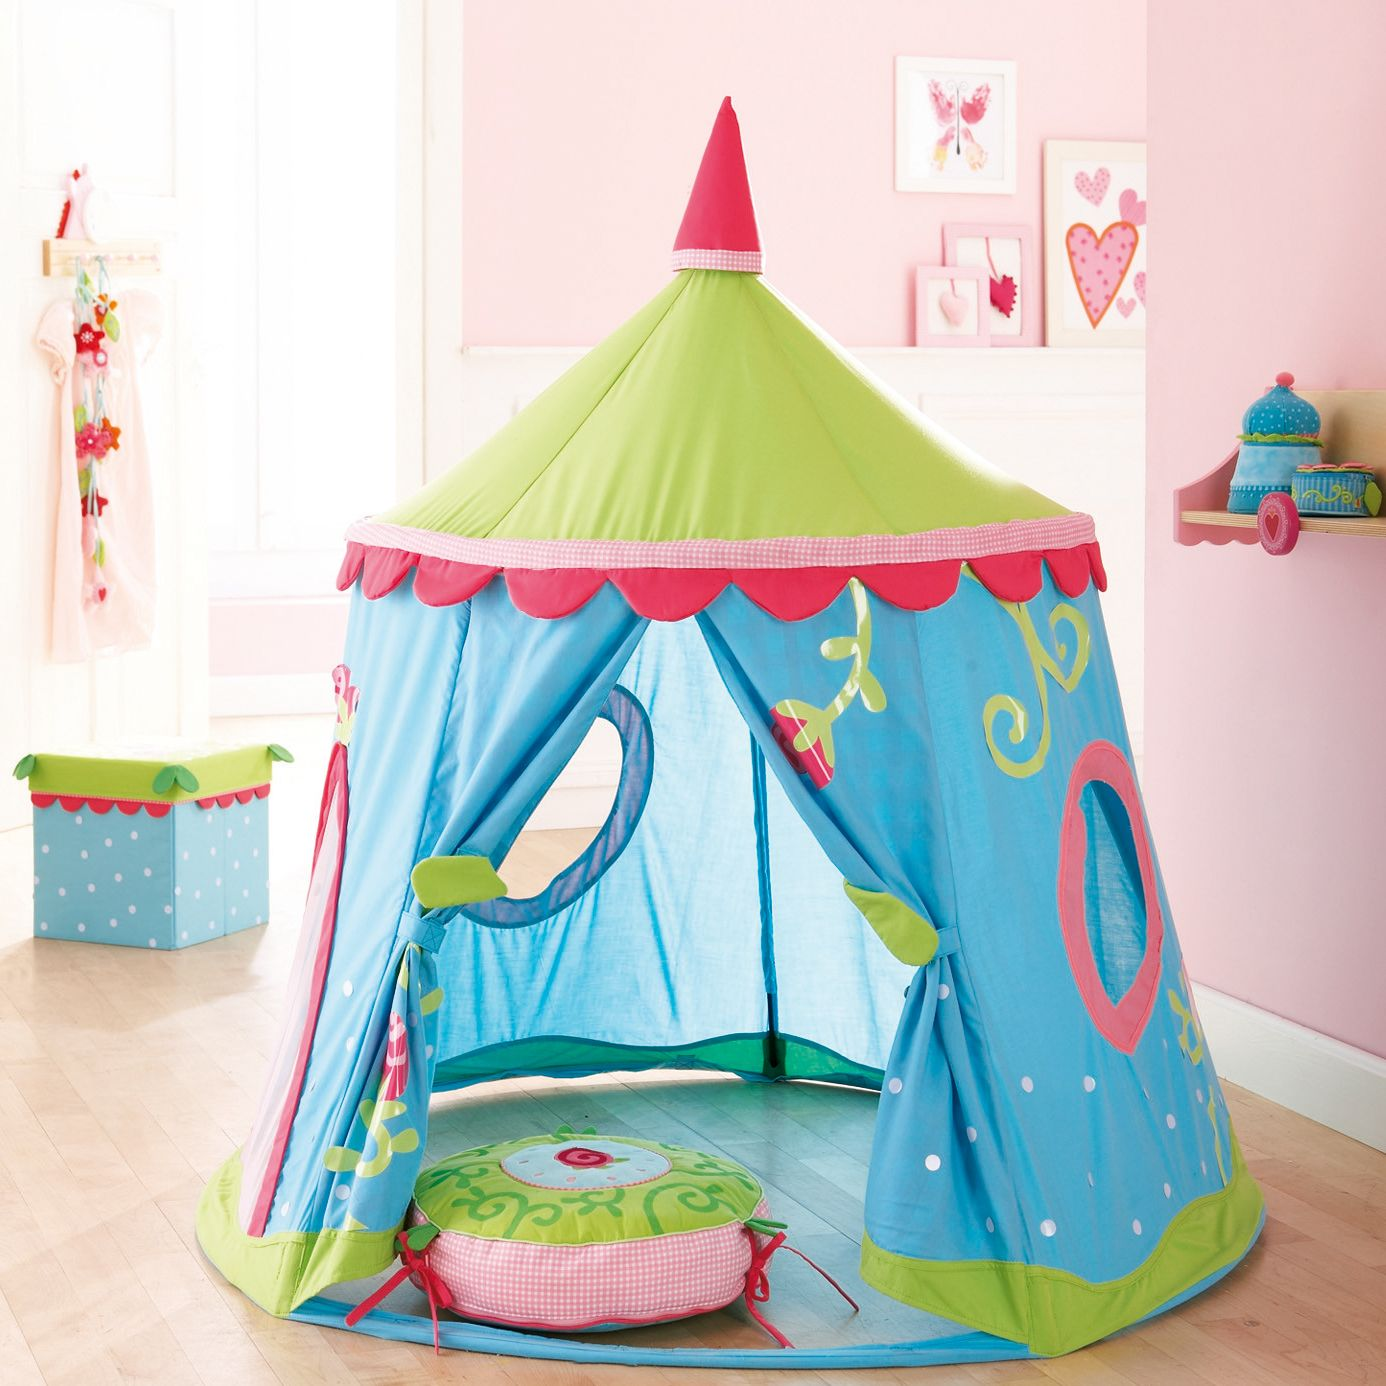 Play Tent Caro-Lini from Haba $134  sc 1 st  Pinterest & Play Tent Caro-Lini from Haba $134 | for the girls | Pinterest ...